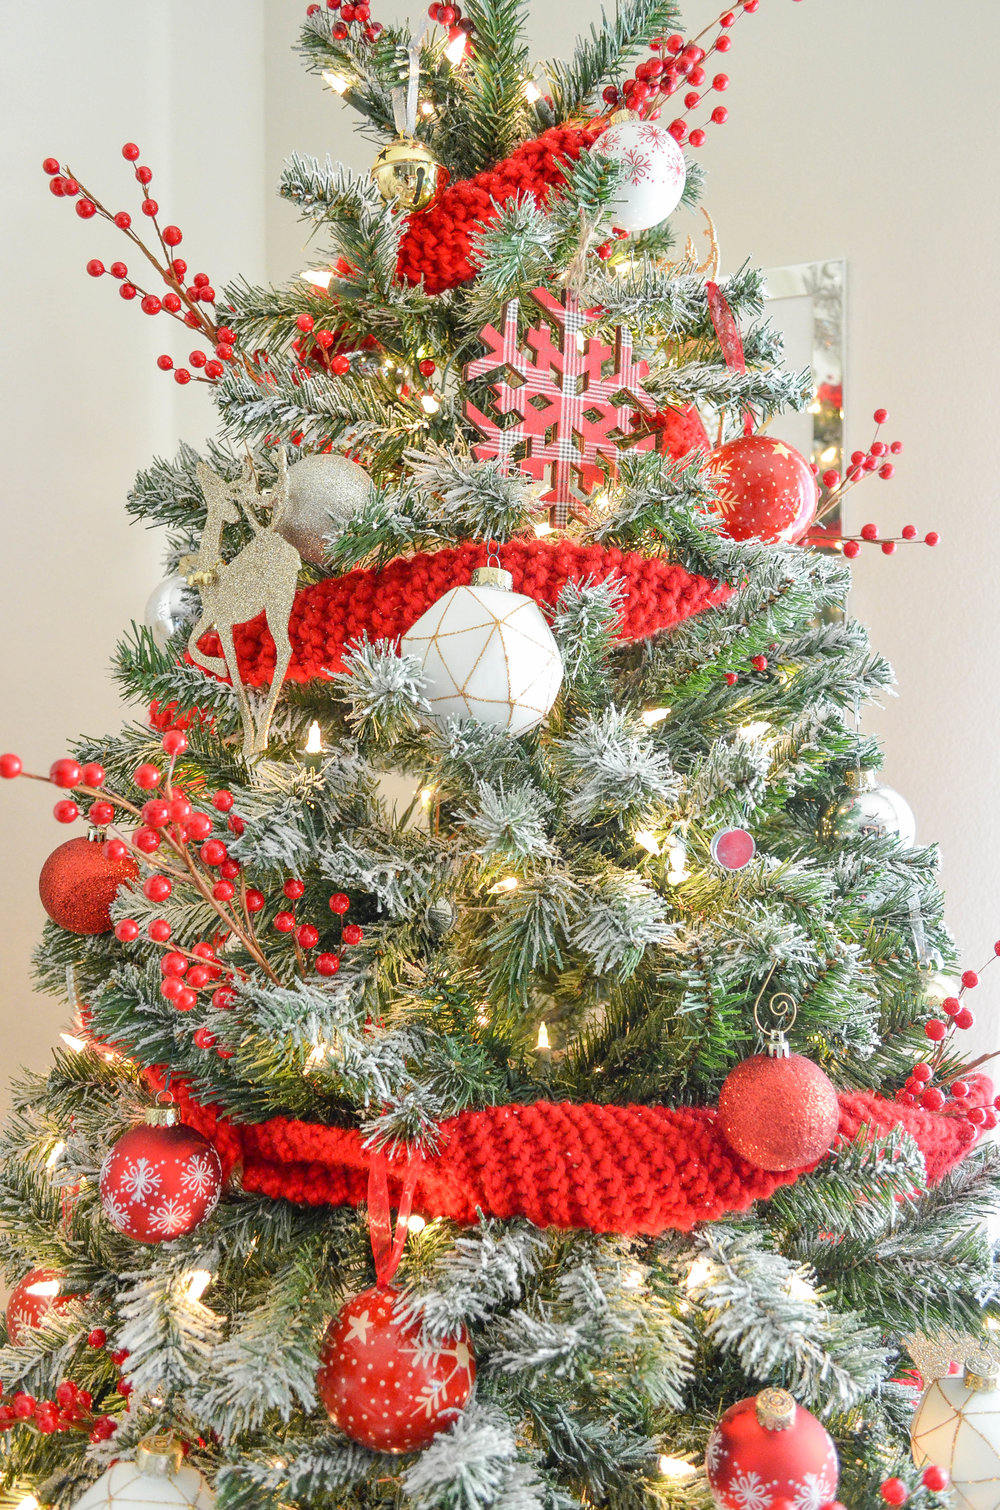 Book Christmas Tree Decorating - Asha-Maia Design | Interiors + Events, Interior Design, Interior Designer, Interior Decorator, Christmas Decorator, Christmas Decoration, Christmas Tree Decorating, Holiday Decorator, Alexandria, VA 22302, Serving Alexandria, VA, Arlington, VA, Washington, DC and surrounding areas.